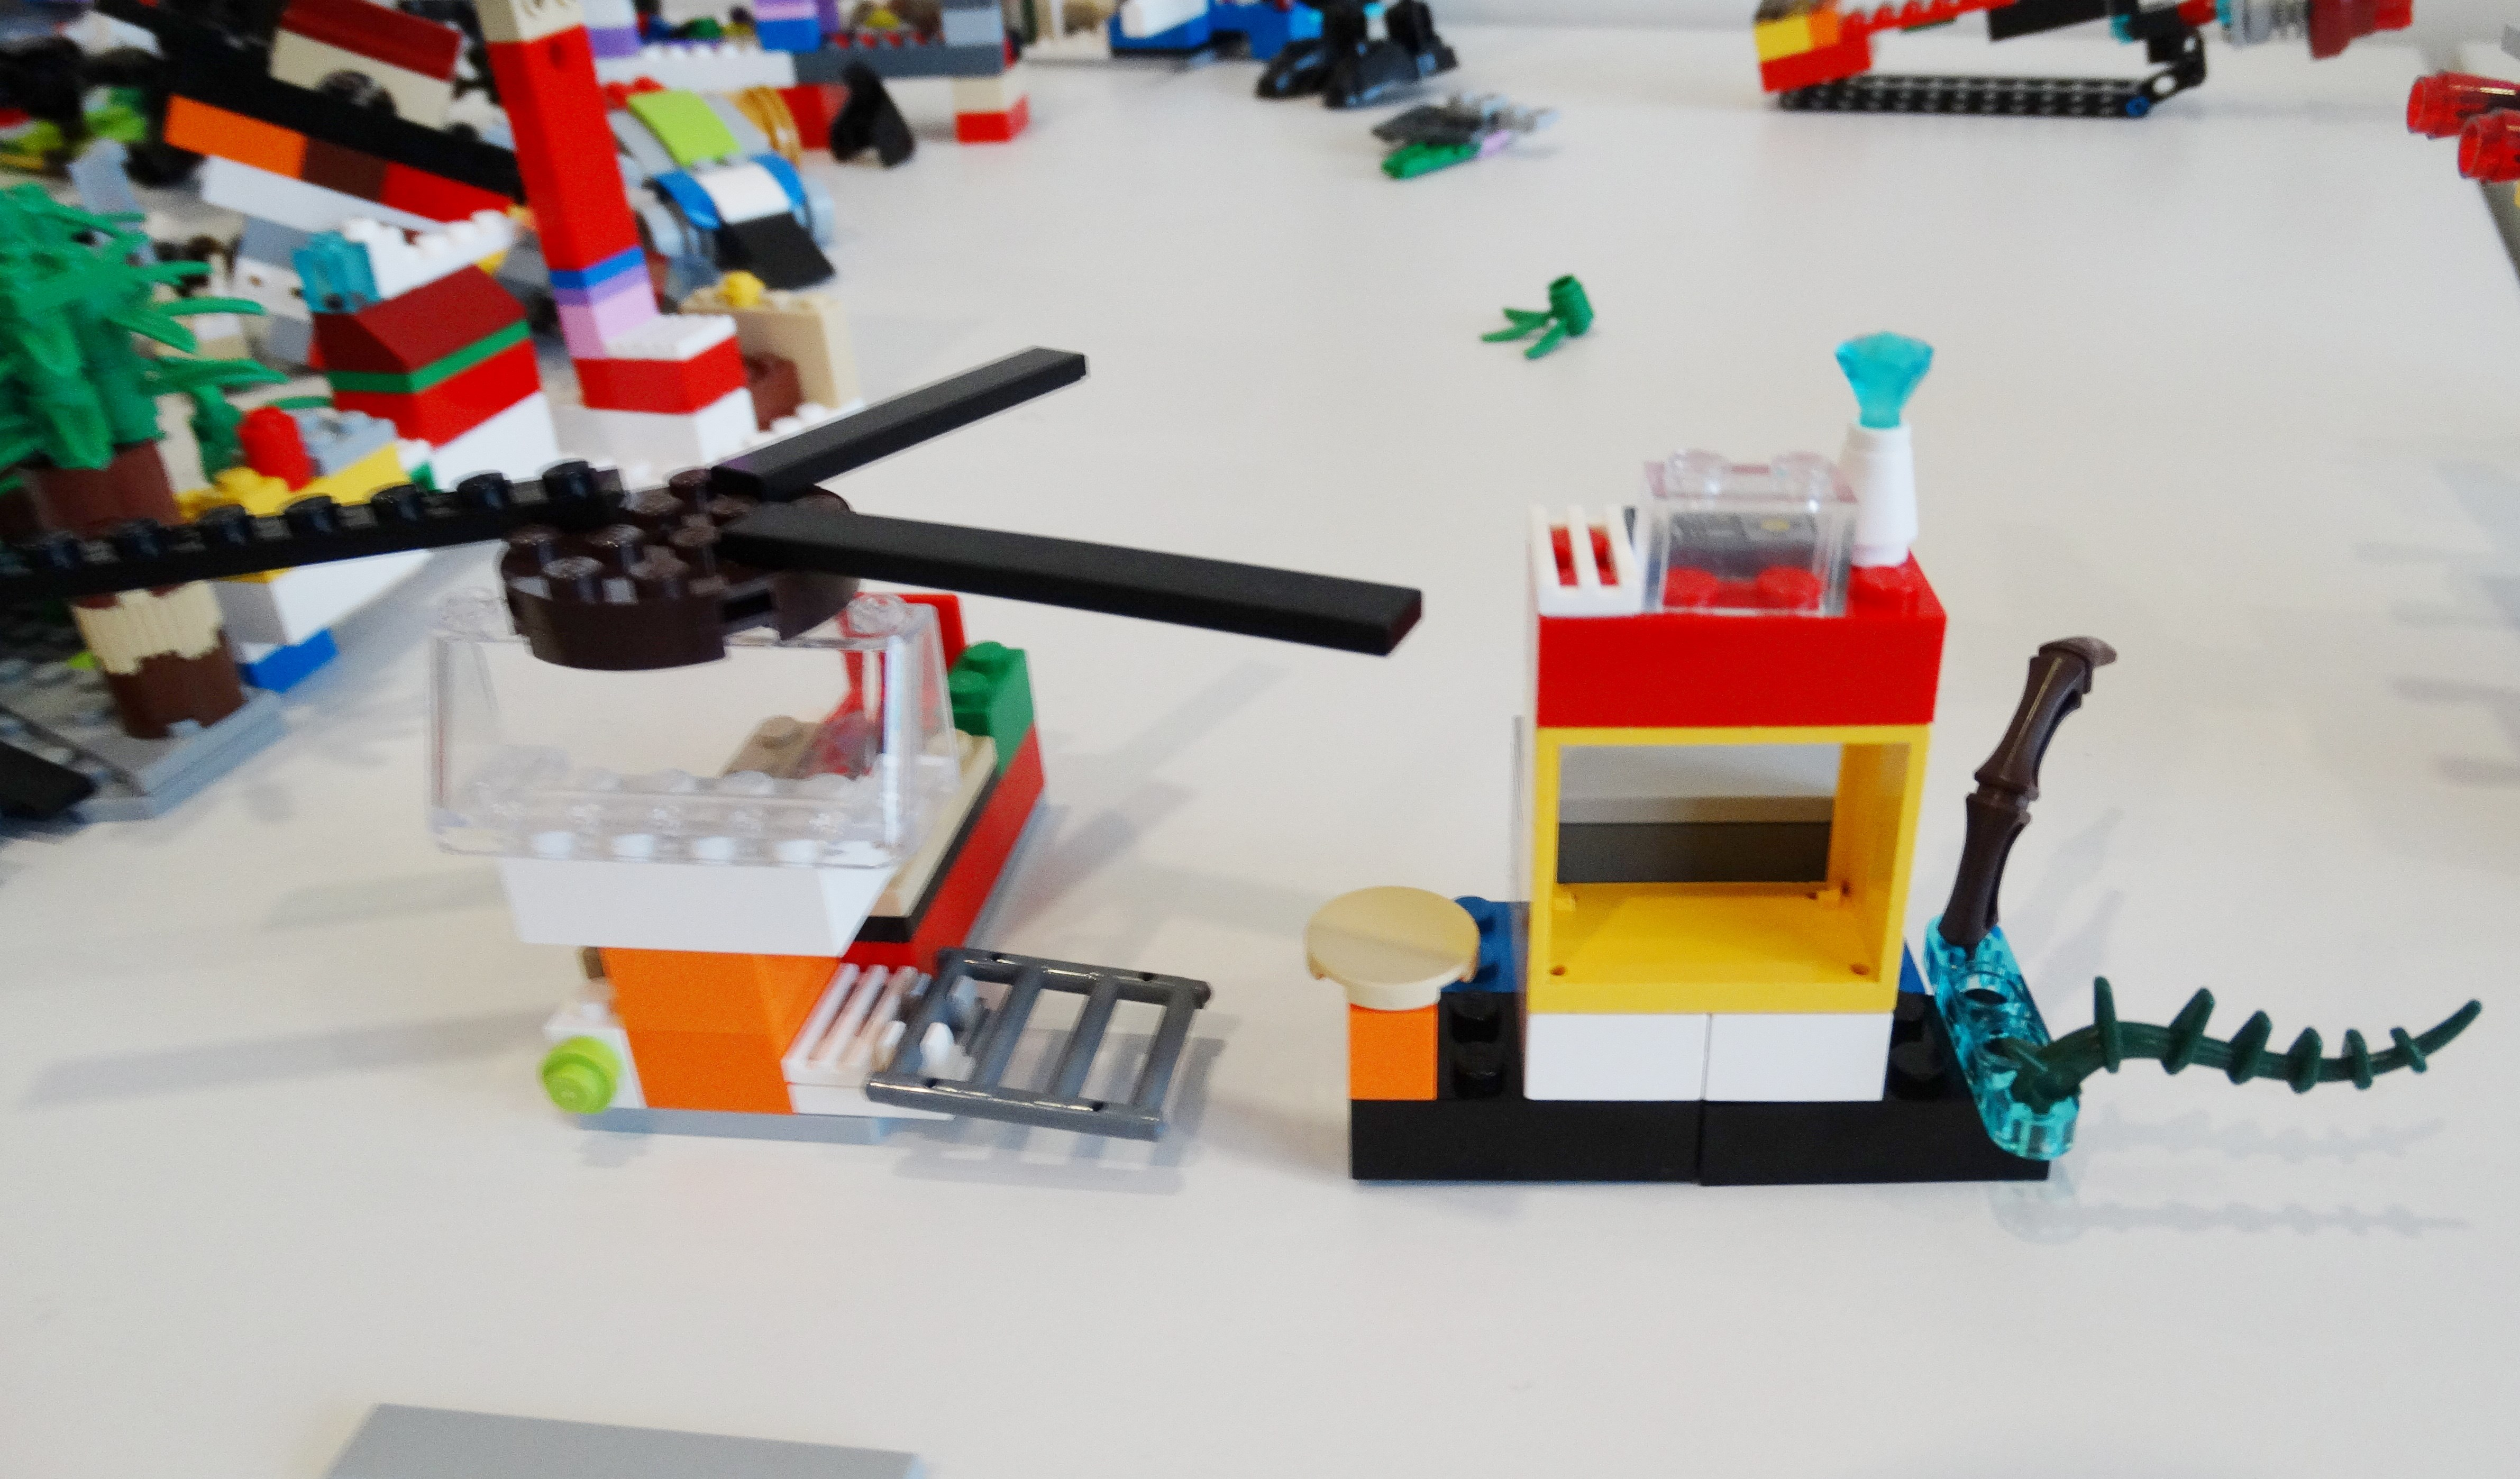 Your LEGO® model could be a plane, helicopter, spaceship, airship or even a bird – as long as it can fly!